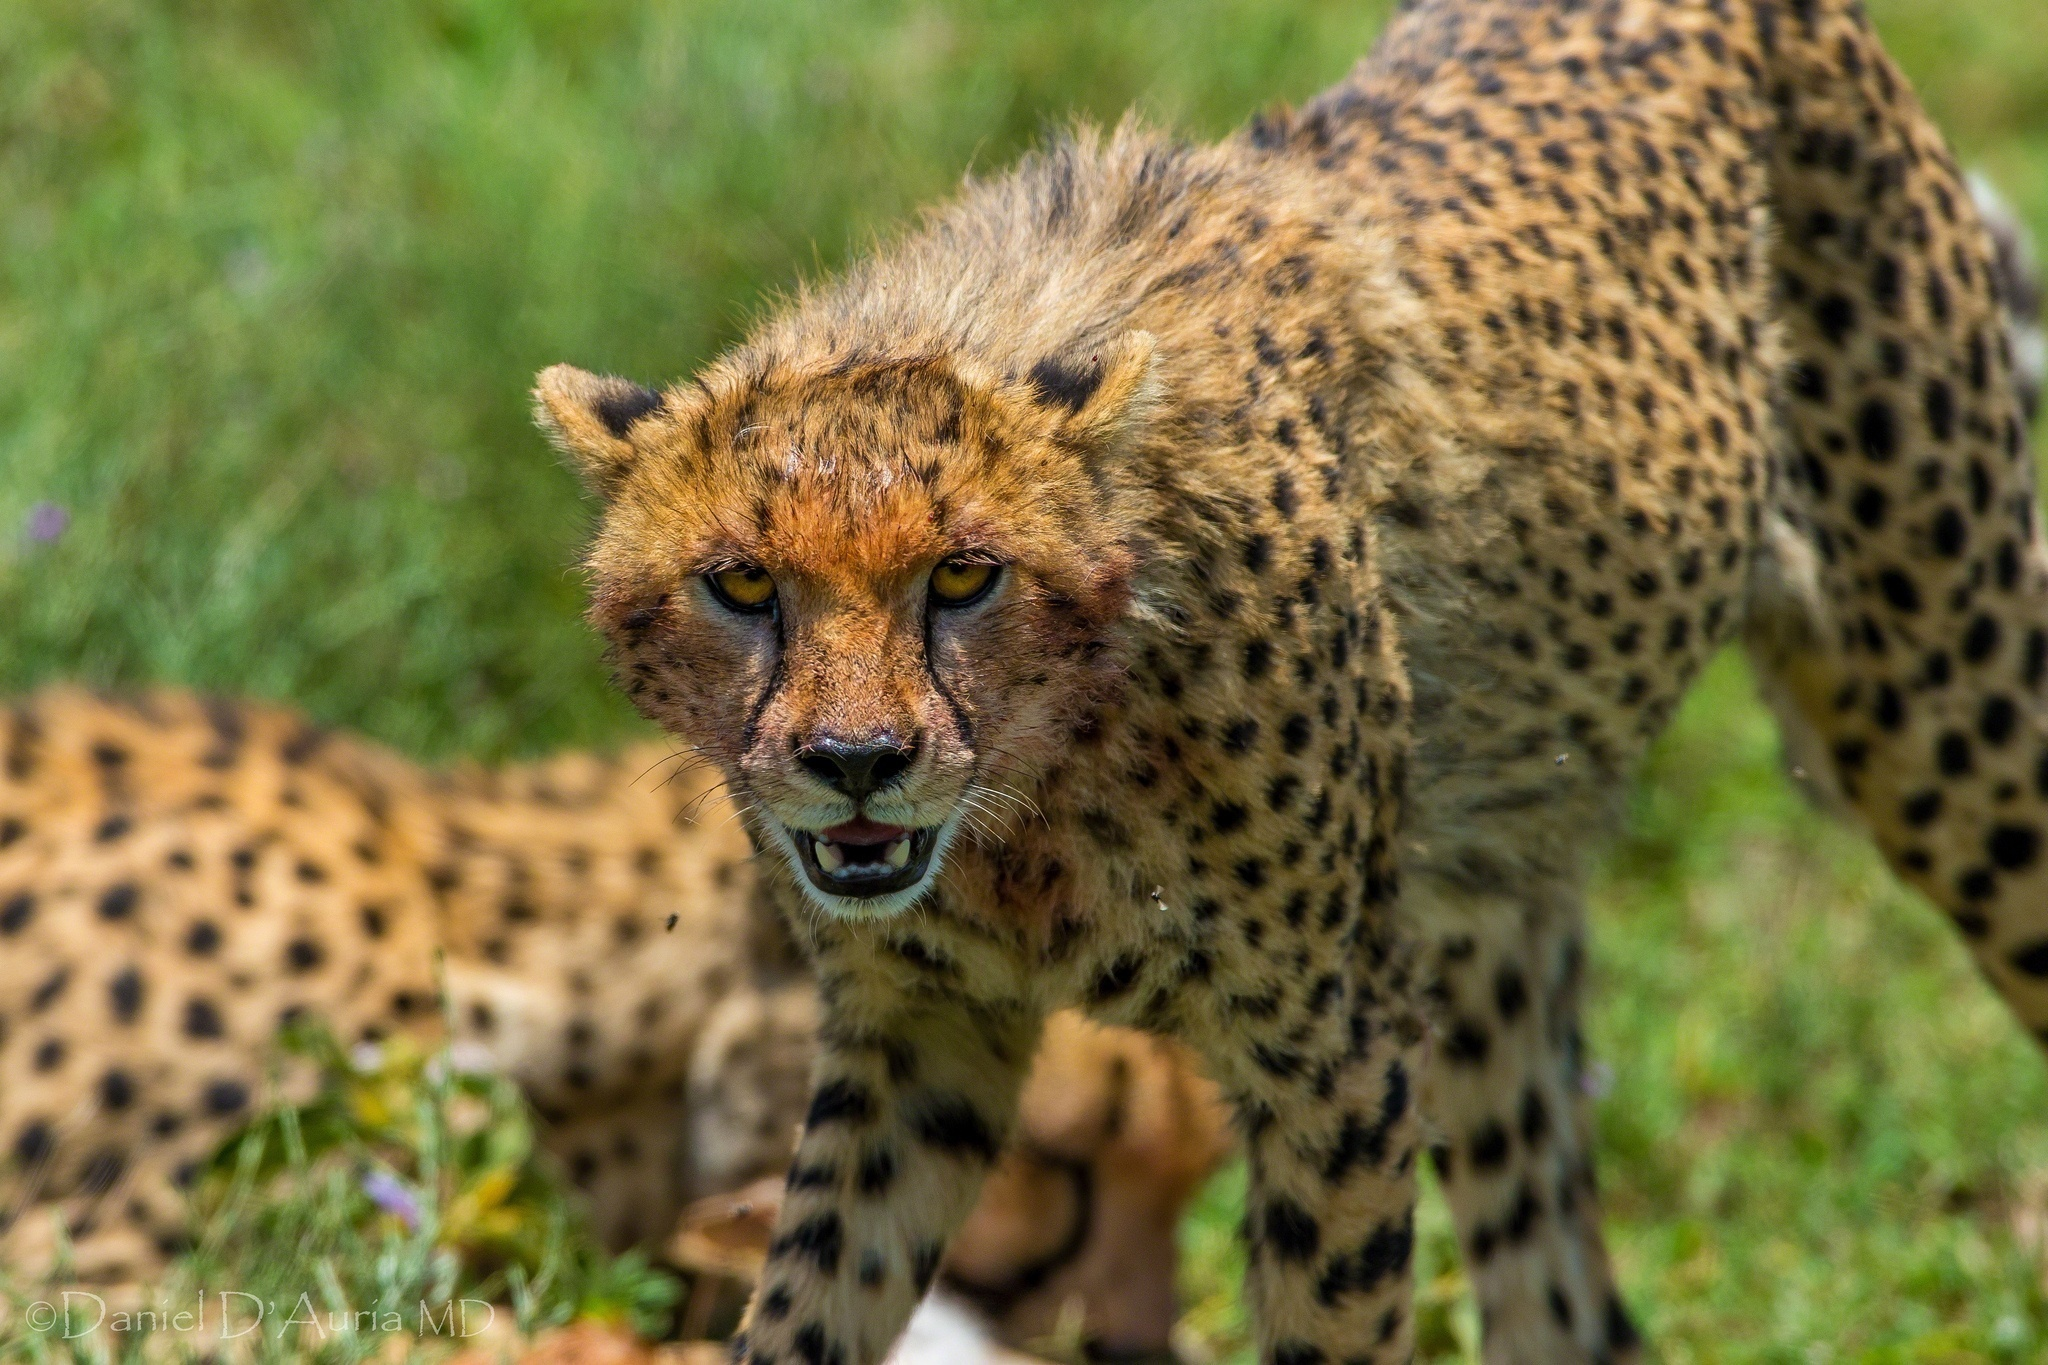 cheetah wild cat muzzle threat anger canines